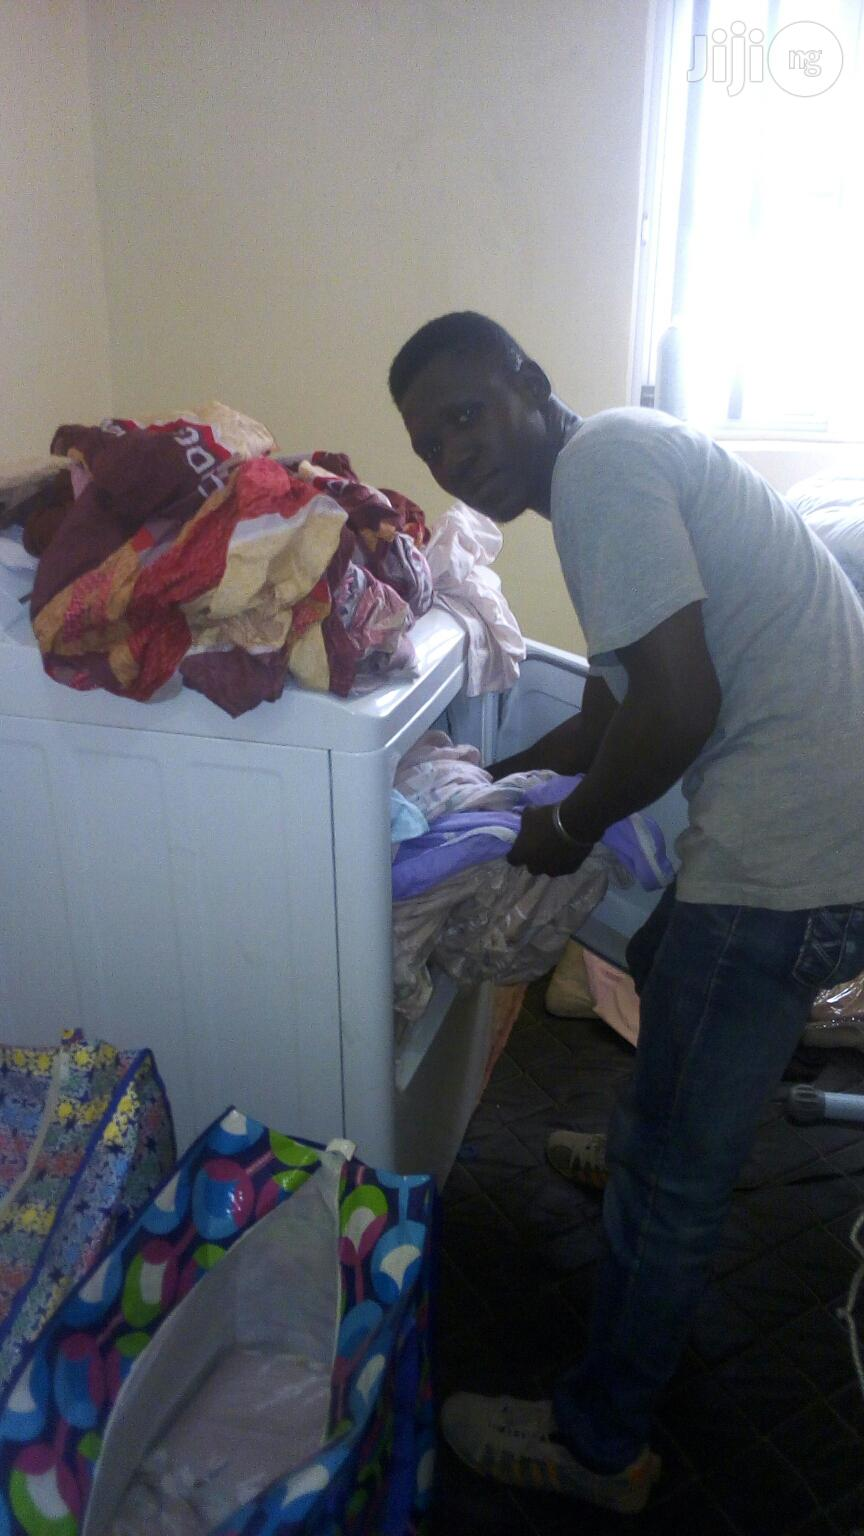 Seeking For House Laundryman Job | Housekeeping & Cleaning CVs for sale in Magodo, Lagos State, Nigeria